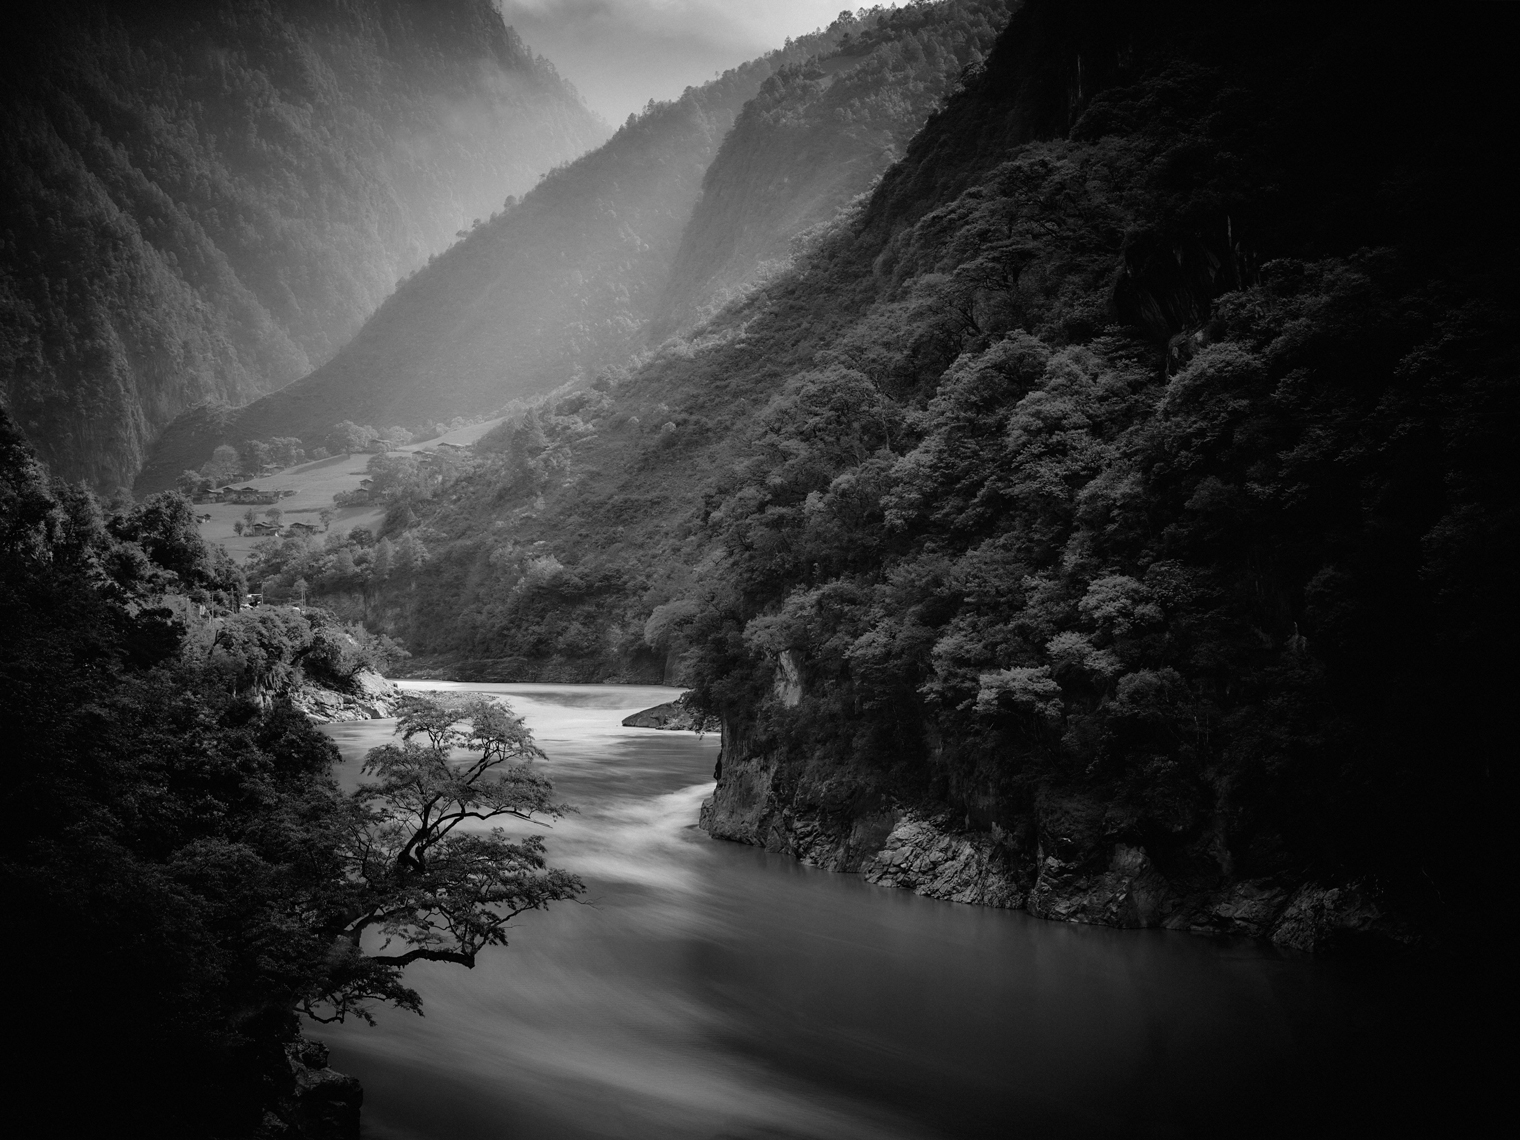 Jon Wyatt Photography - Nu river gorge, China